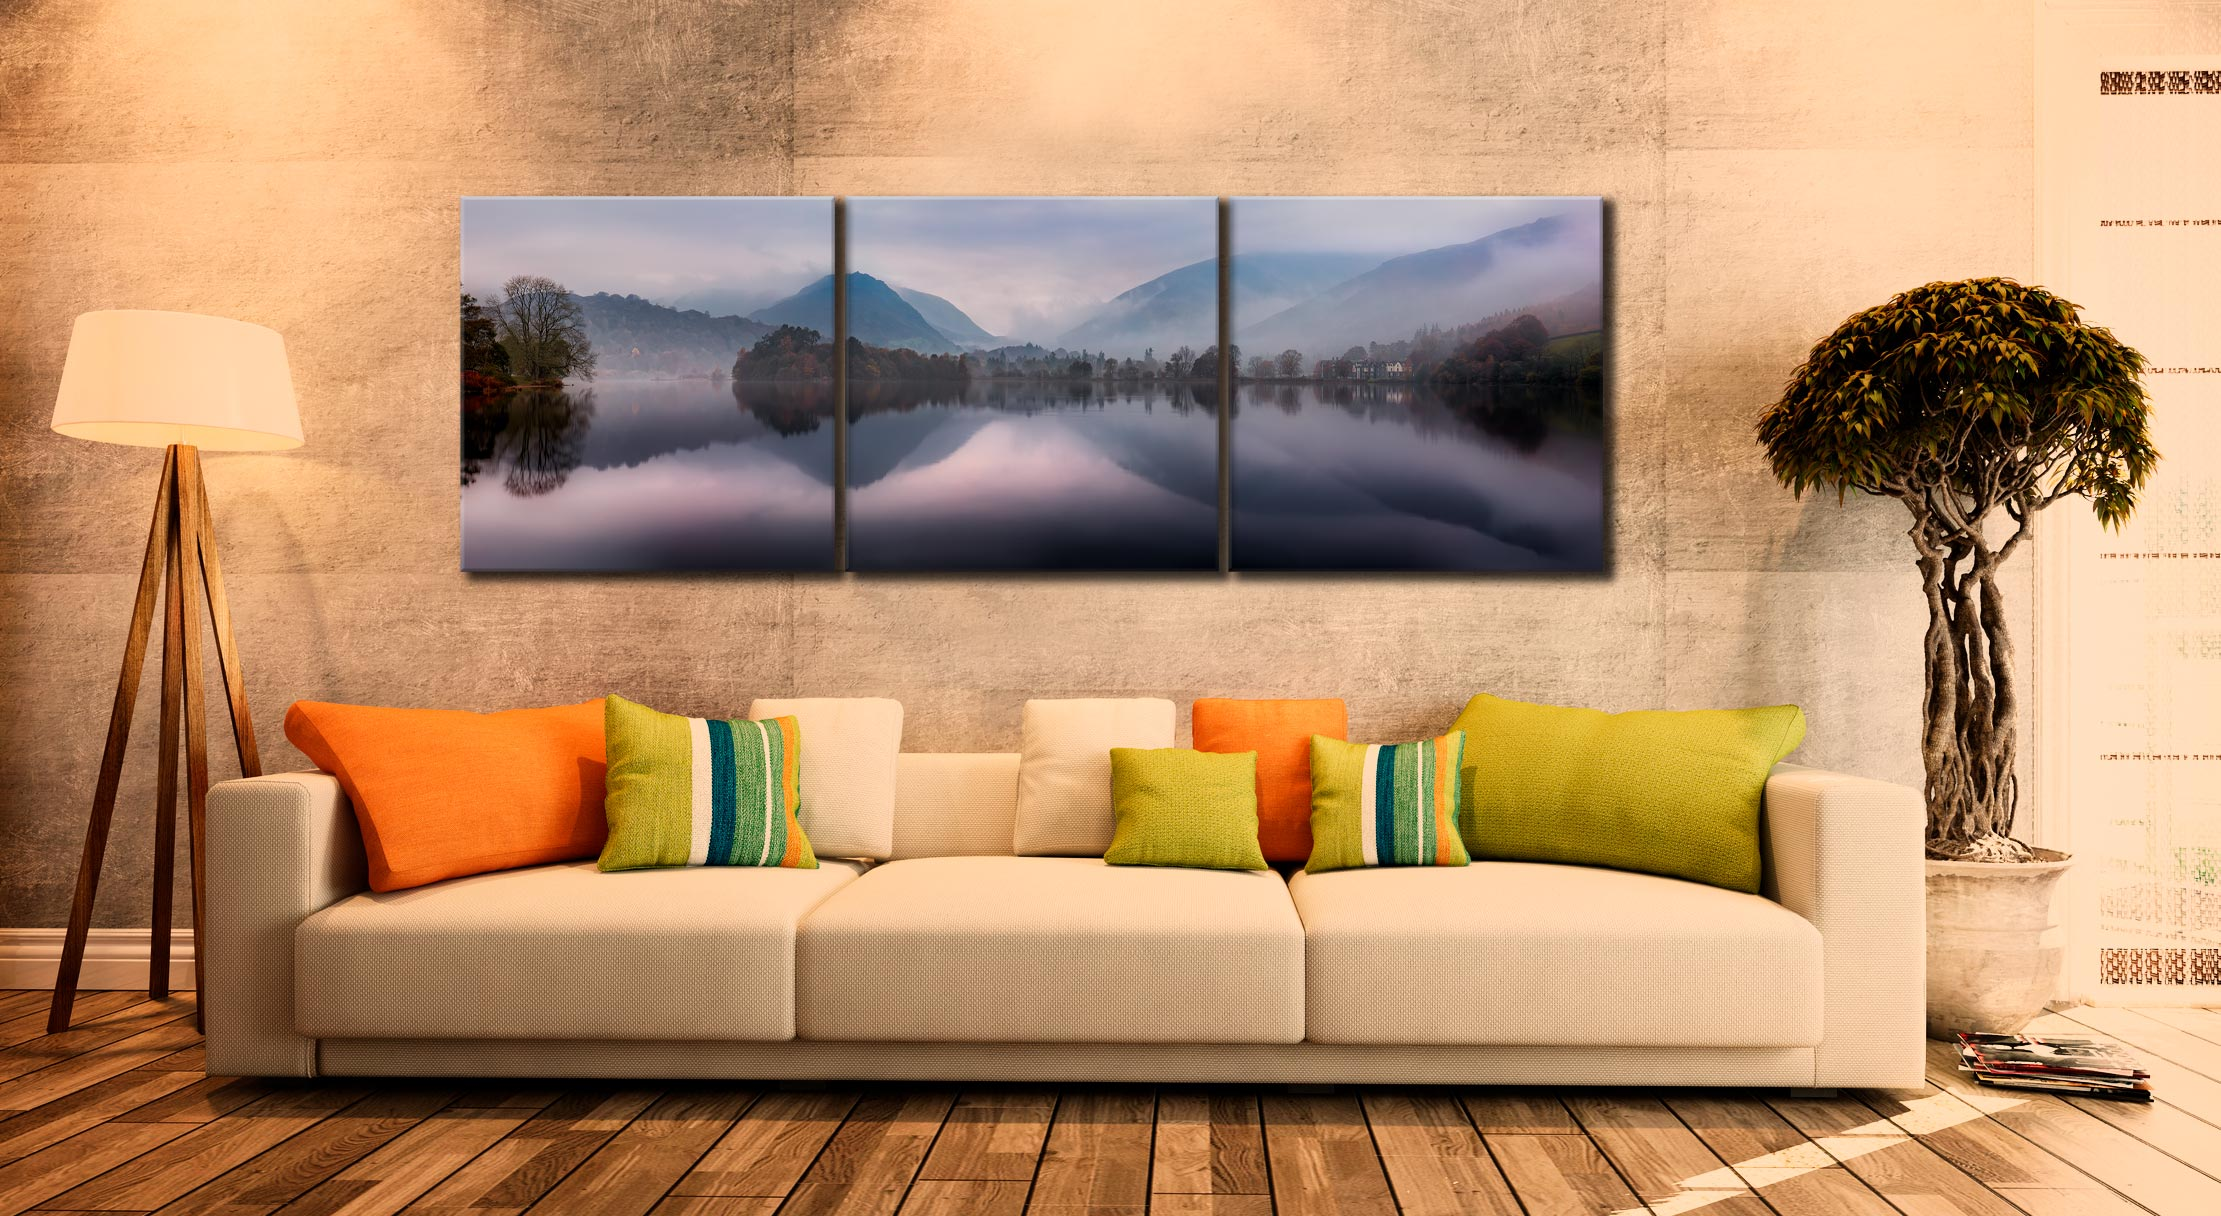 Misty Grasmere - 3 Panel Canvas on Wall